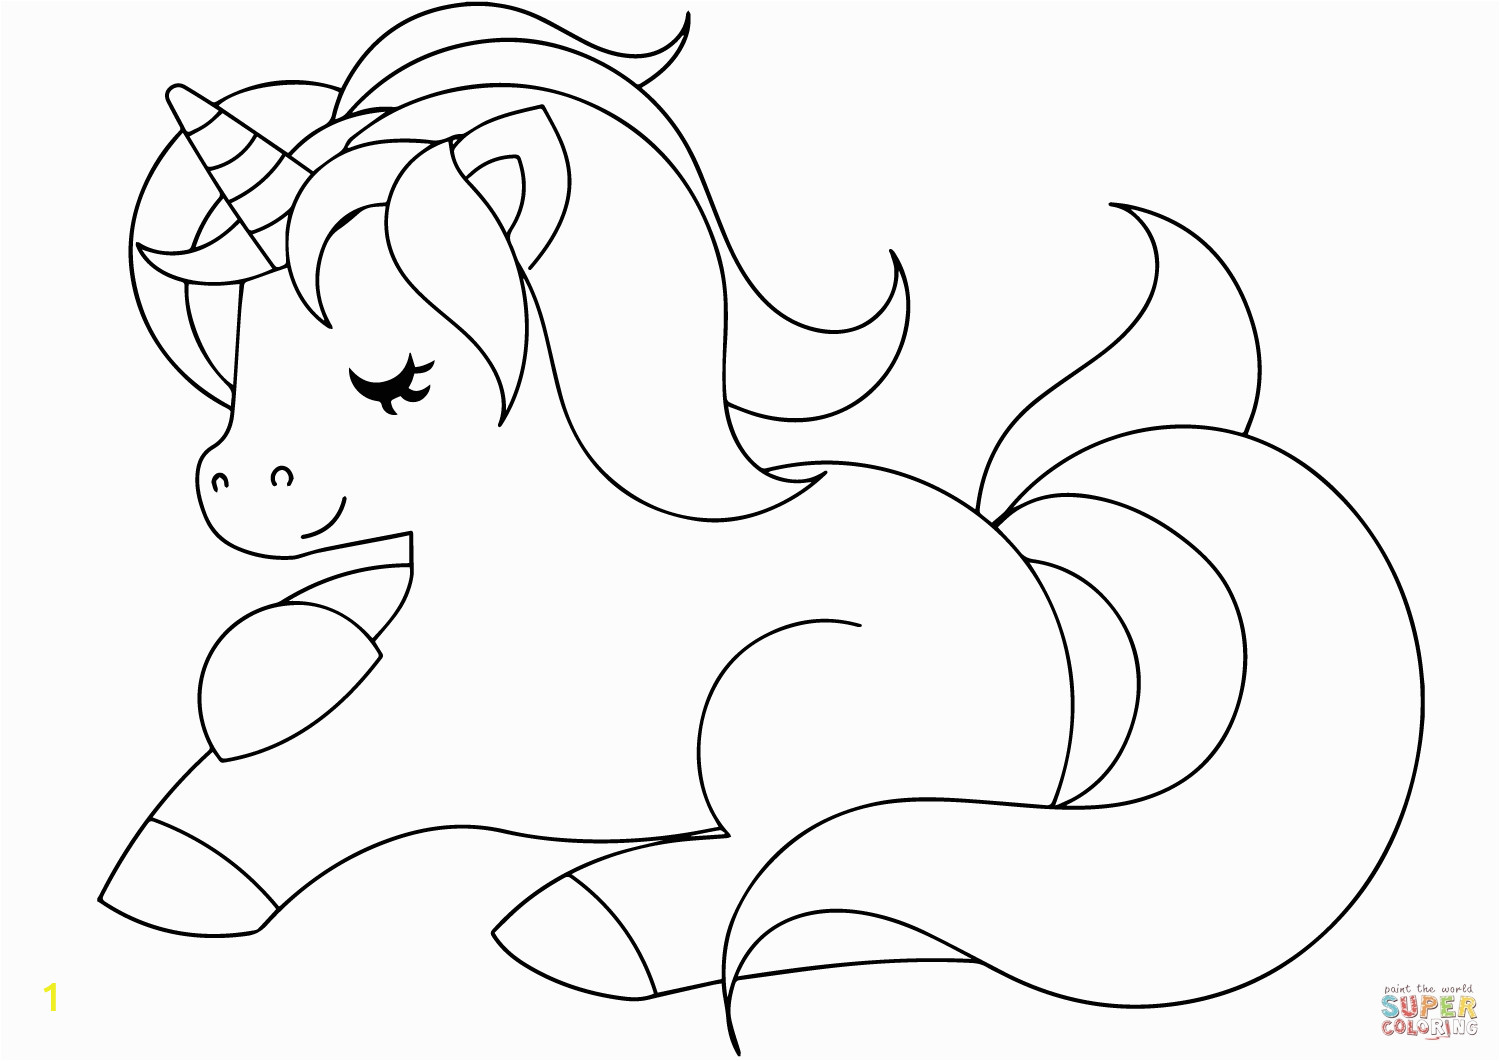 ad35b4a02fb3de934eeb0be2c2 perfect jojo siwa coloring pages bow printable unknown 1500 1061